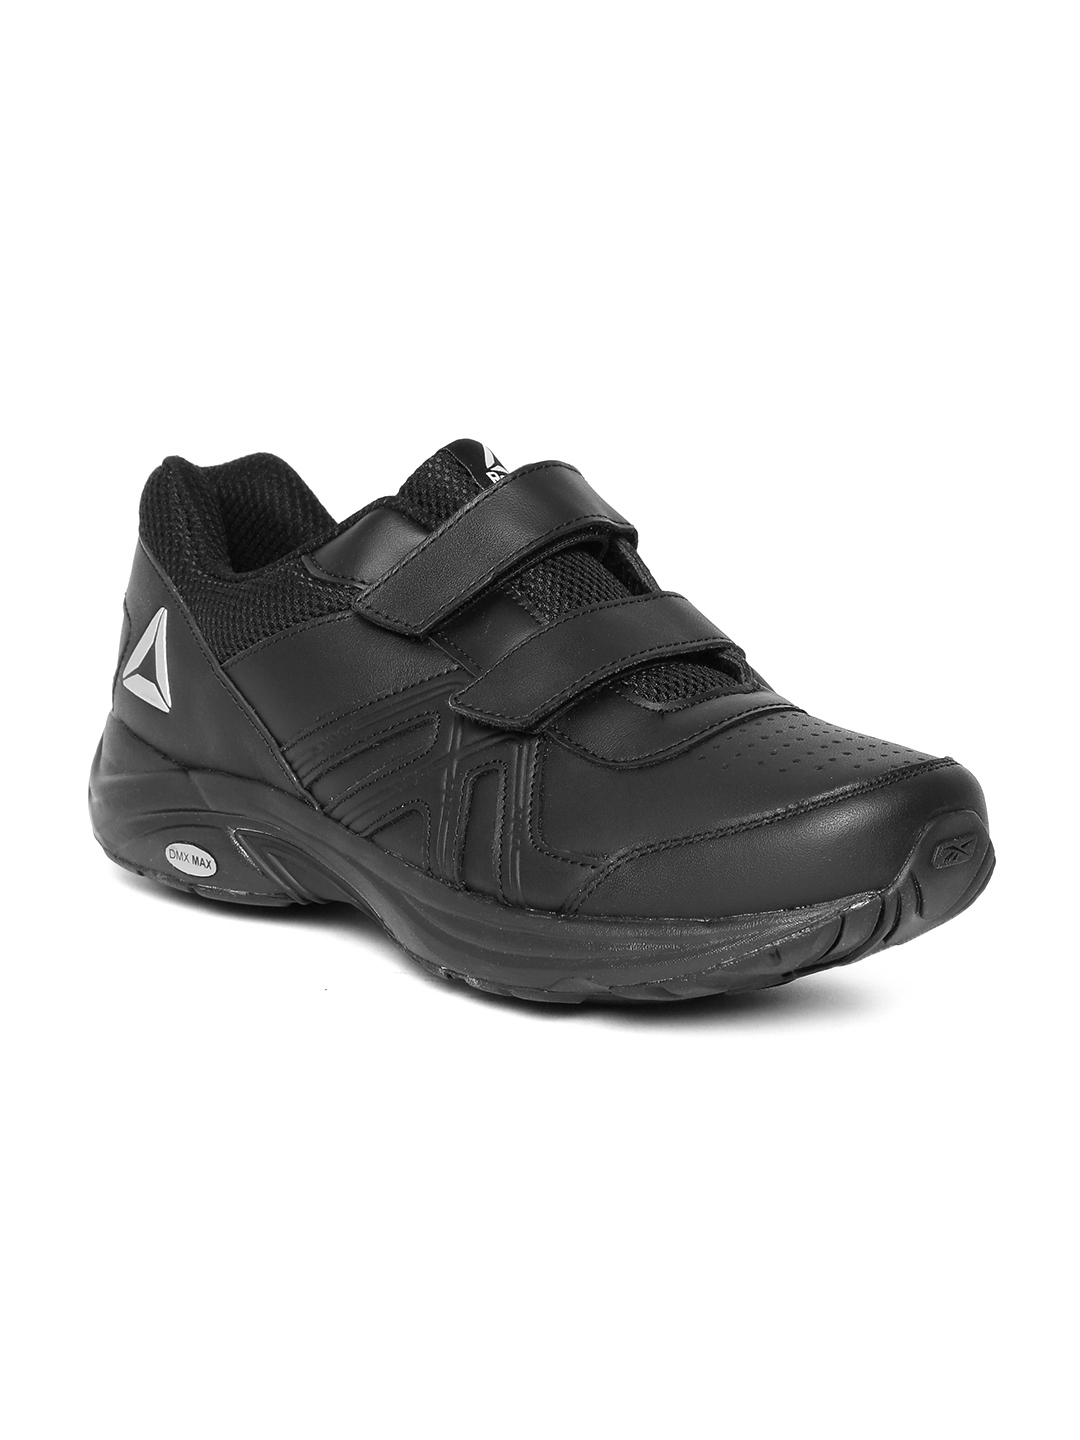 a34c7c53914a7 Reebok Men Black Max Stride Plus Leather Running Shoes. Rs. 7999Additional  ...